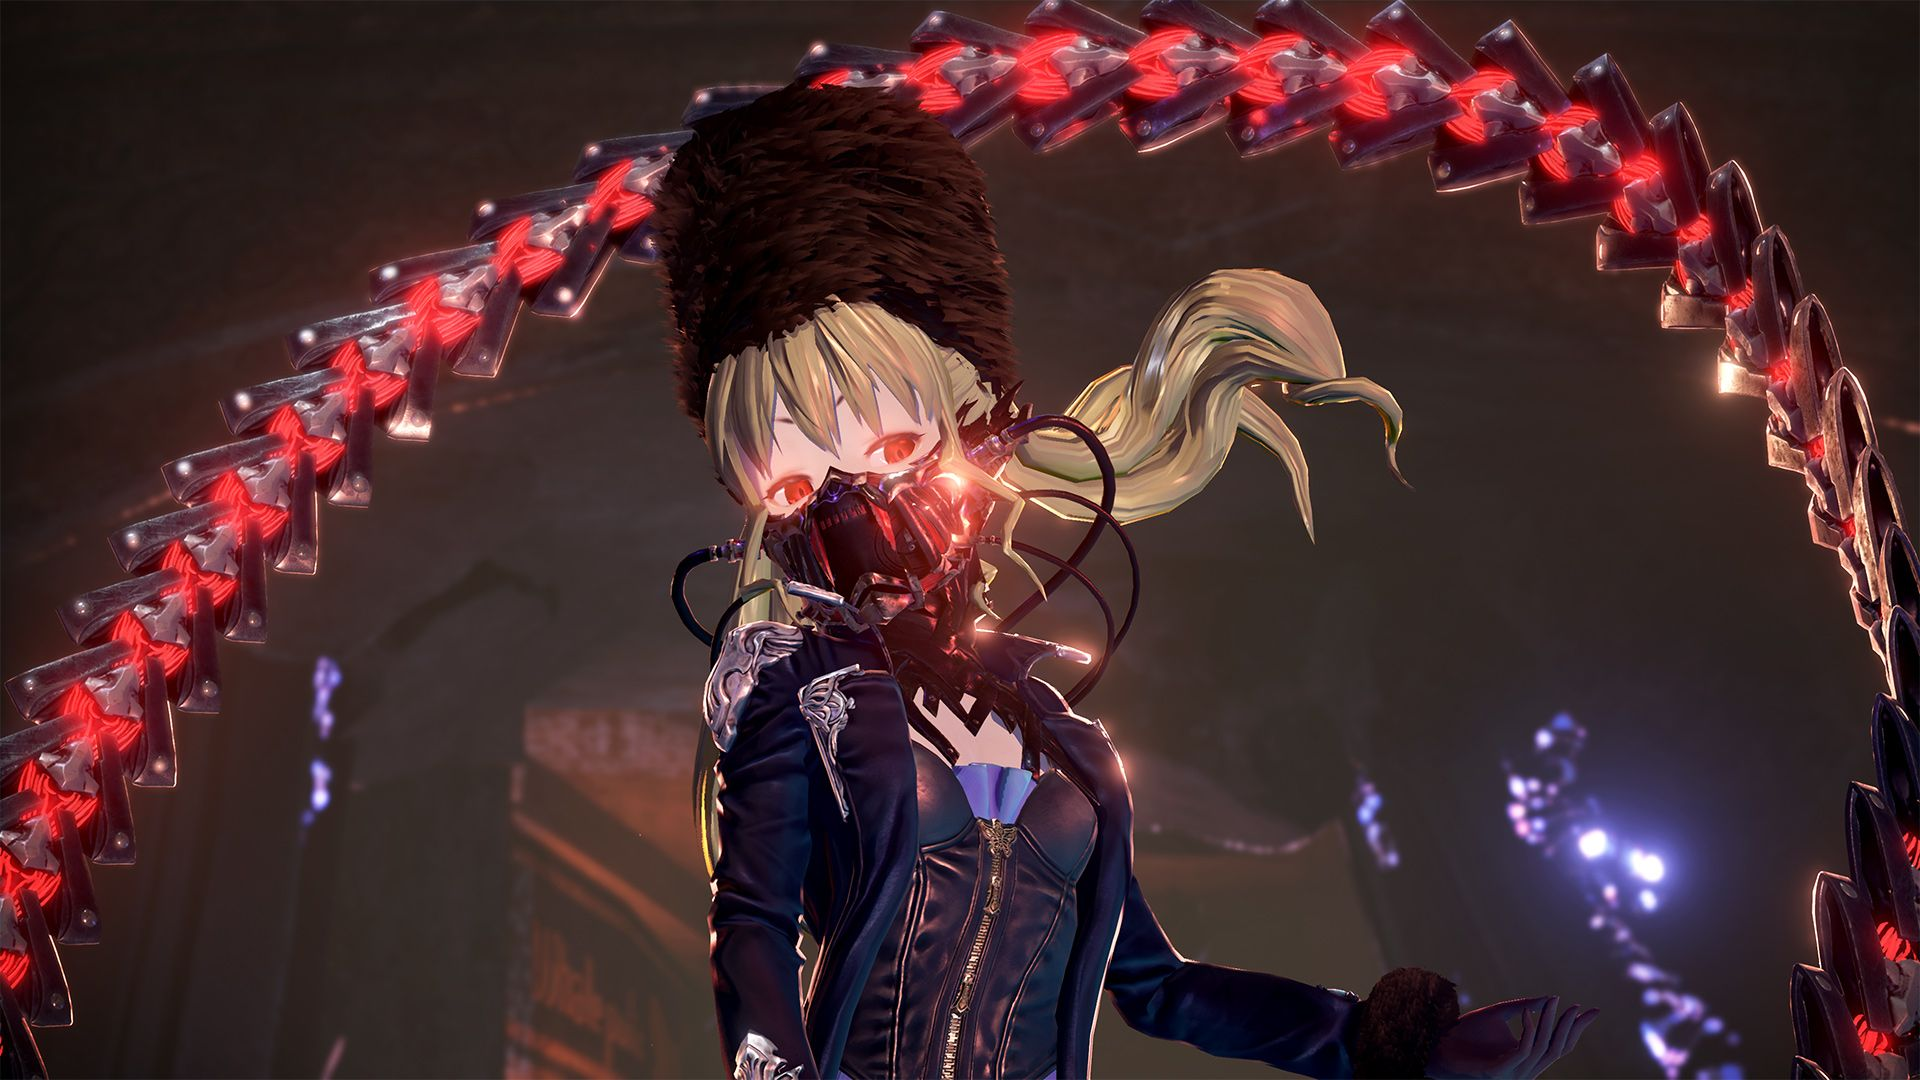 Code Vein Blazing Heretic